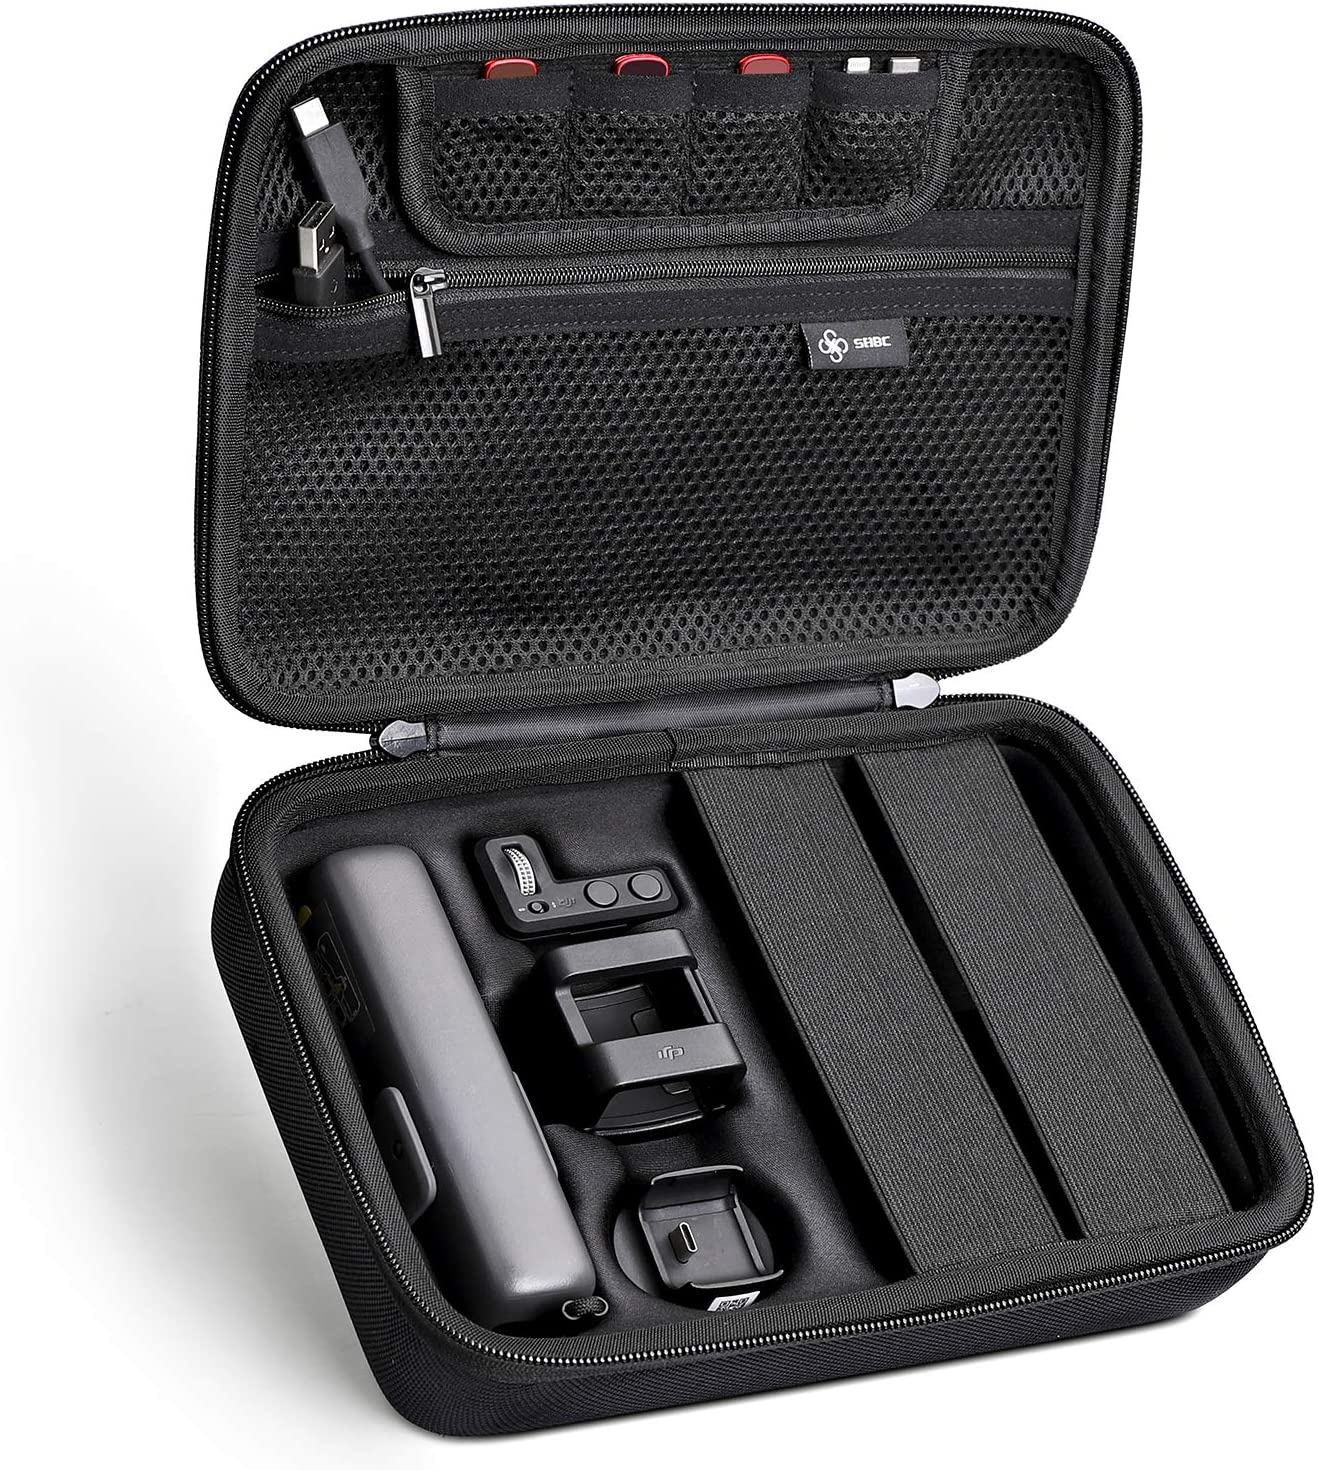 SHBC Carrying Case with Large Capacity and Absolutely Compatible with DJI Osmo Pocket and Expansion Kit Accessories The Waterproof Hard Bag is Your Necessary for Storage and Travelling